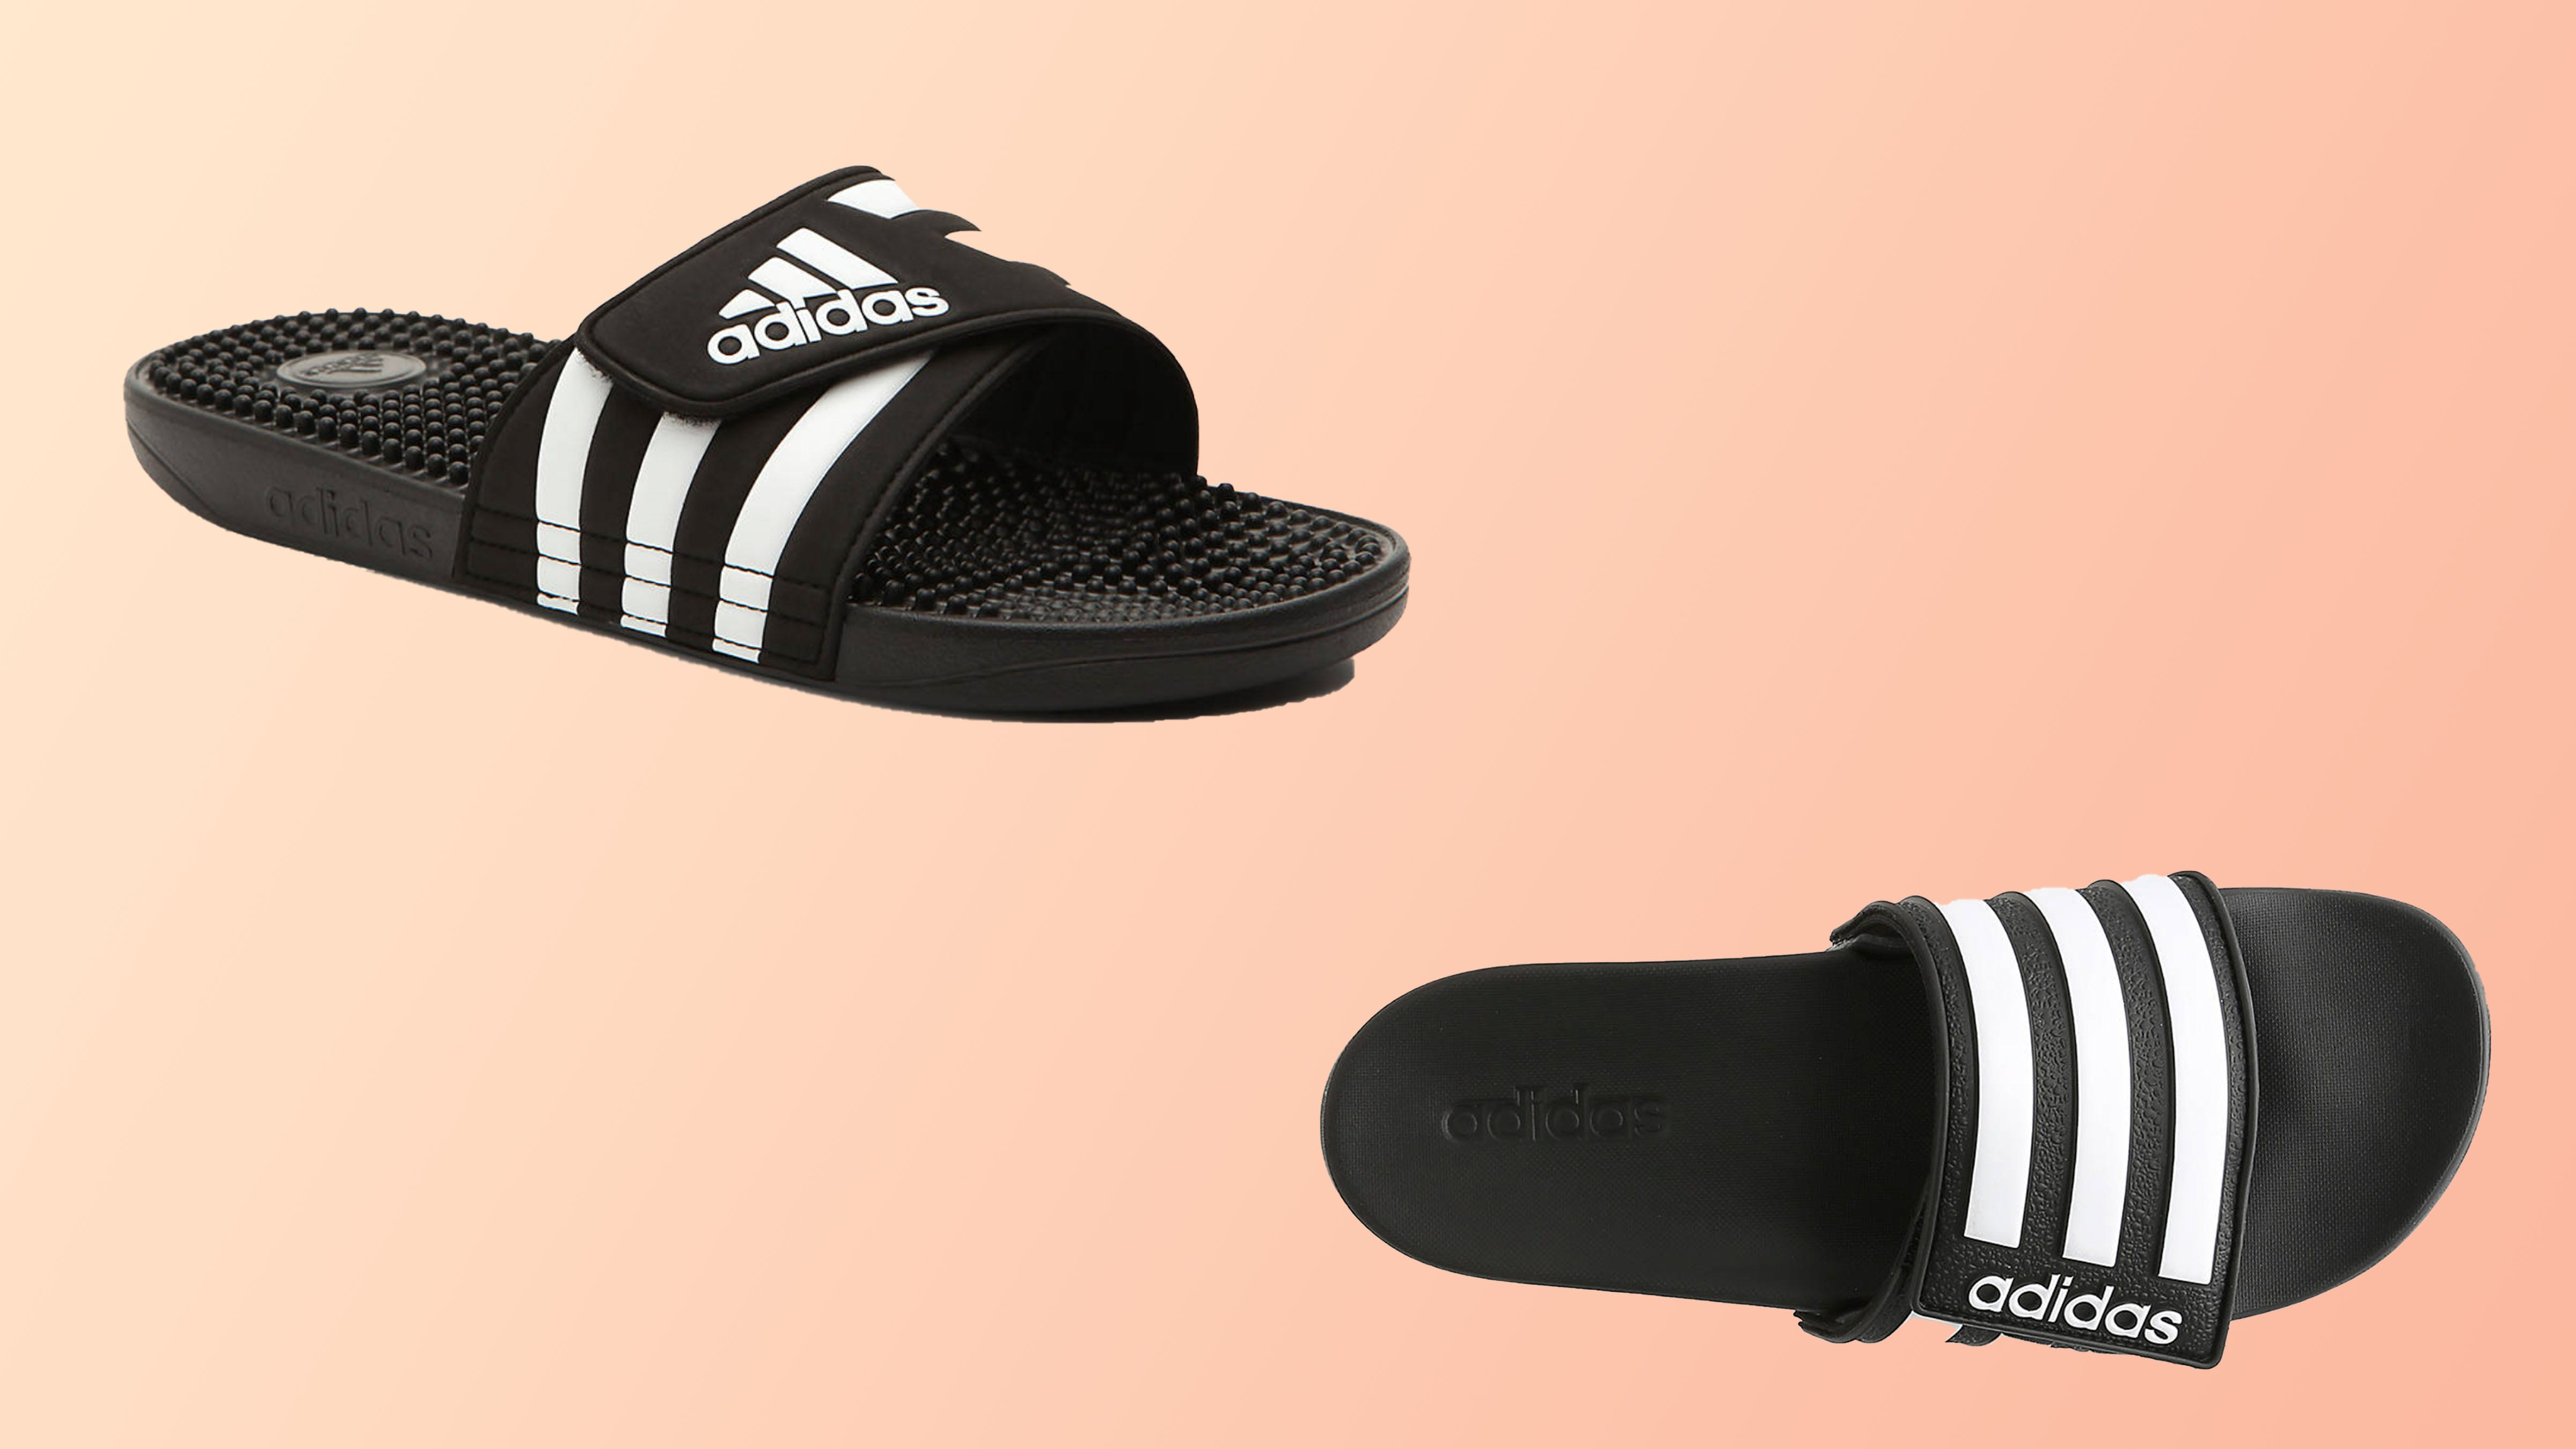 Score two pairs of Adilette slides for